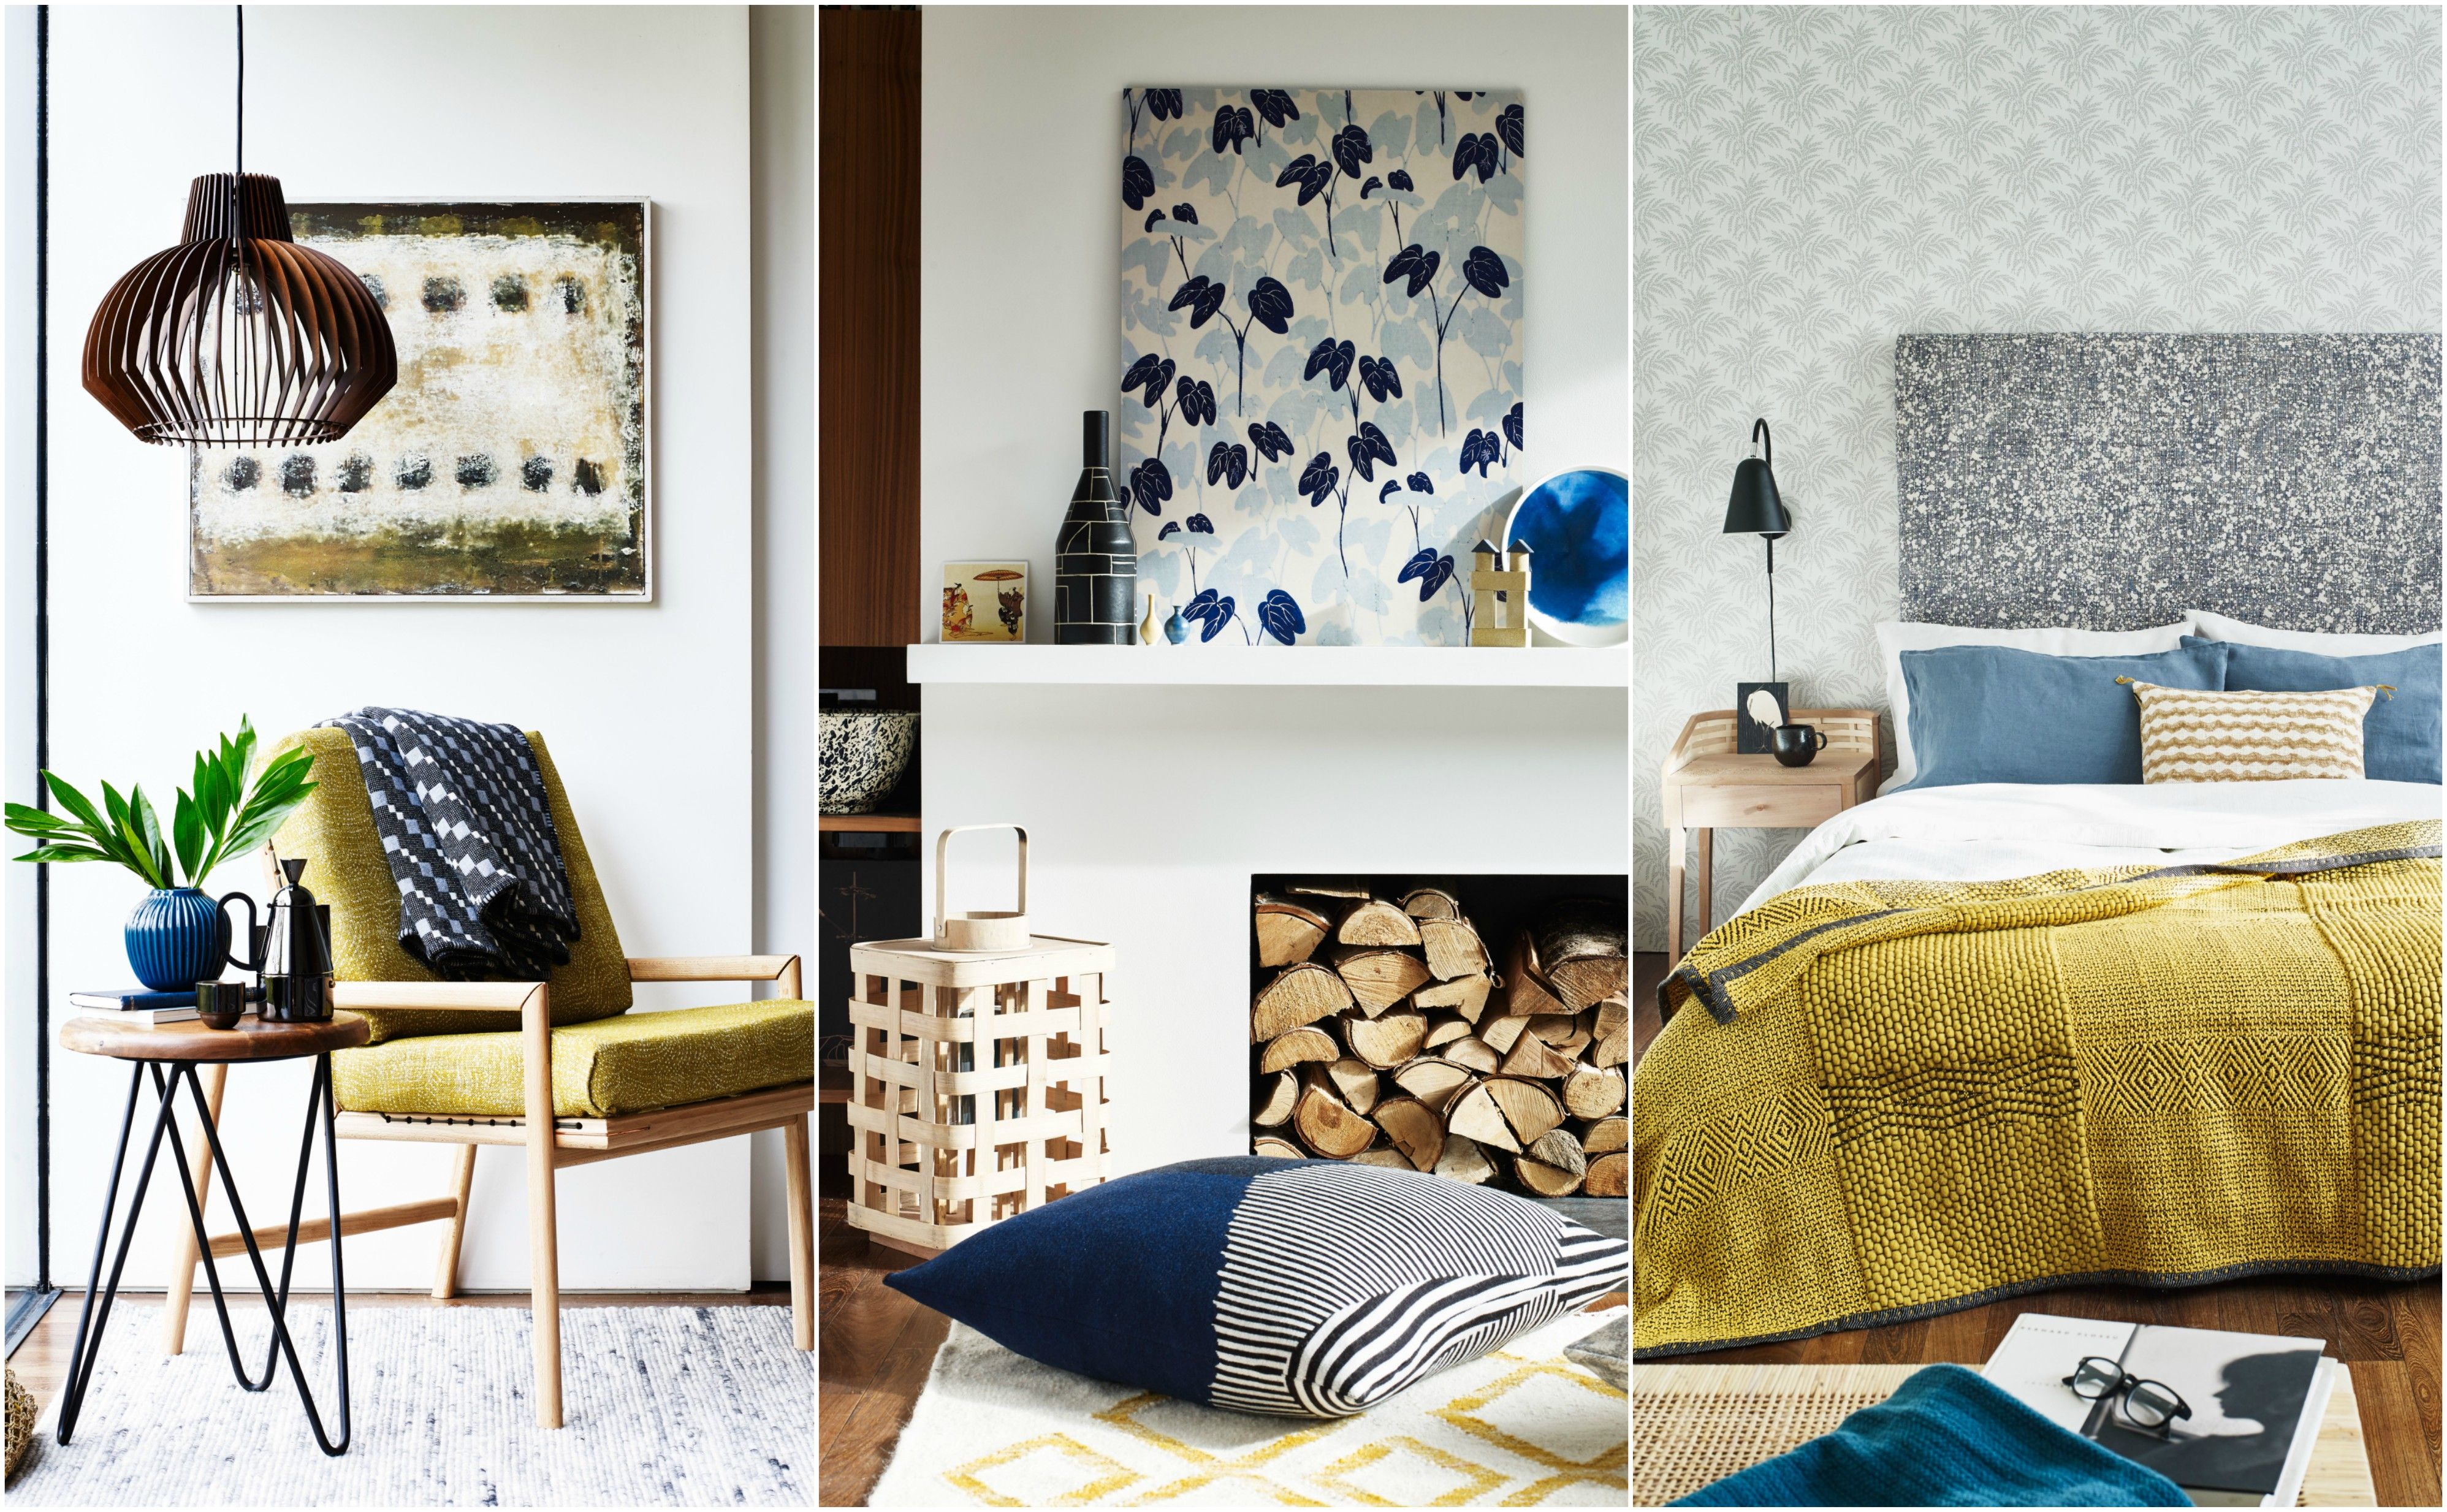 8 Modern Oriental Decorating Ideas - How To Create A ...